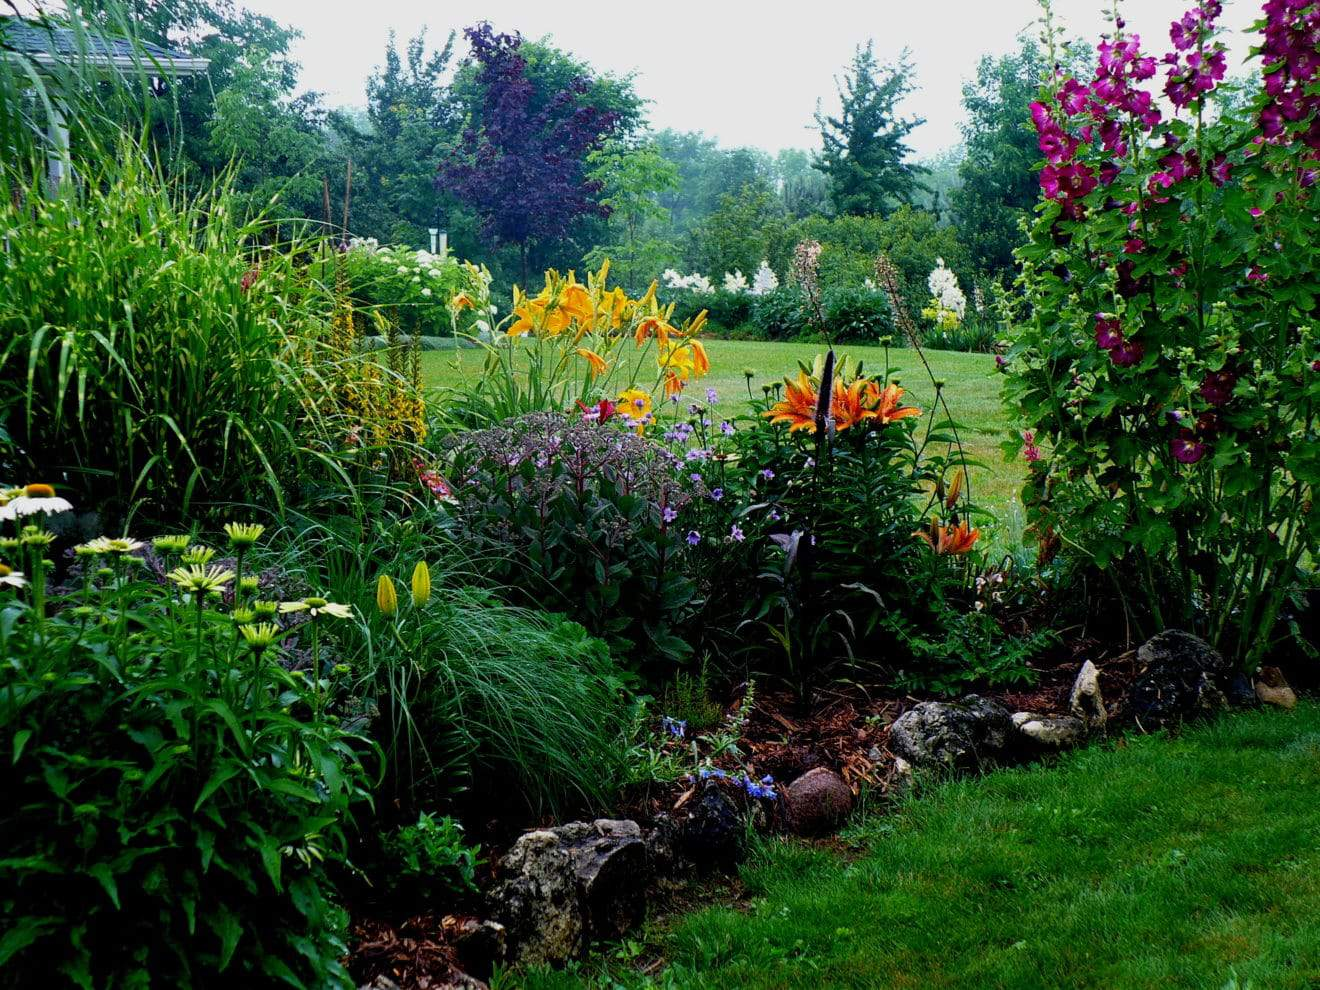 One of the gardens on the Ontariogarden route forthe Rural Gardens of Grey and Bruce Counties.